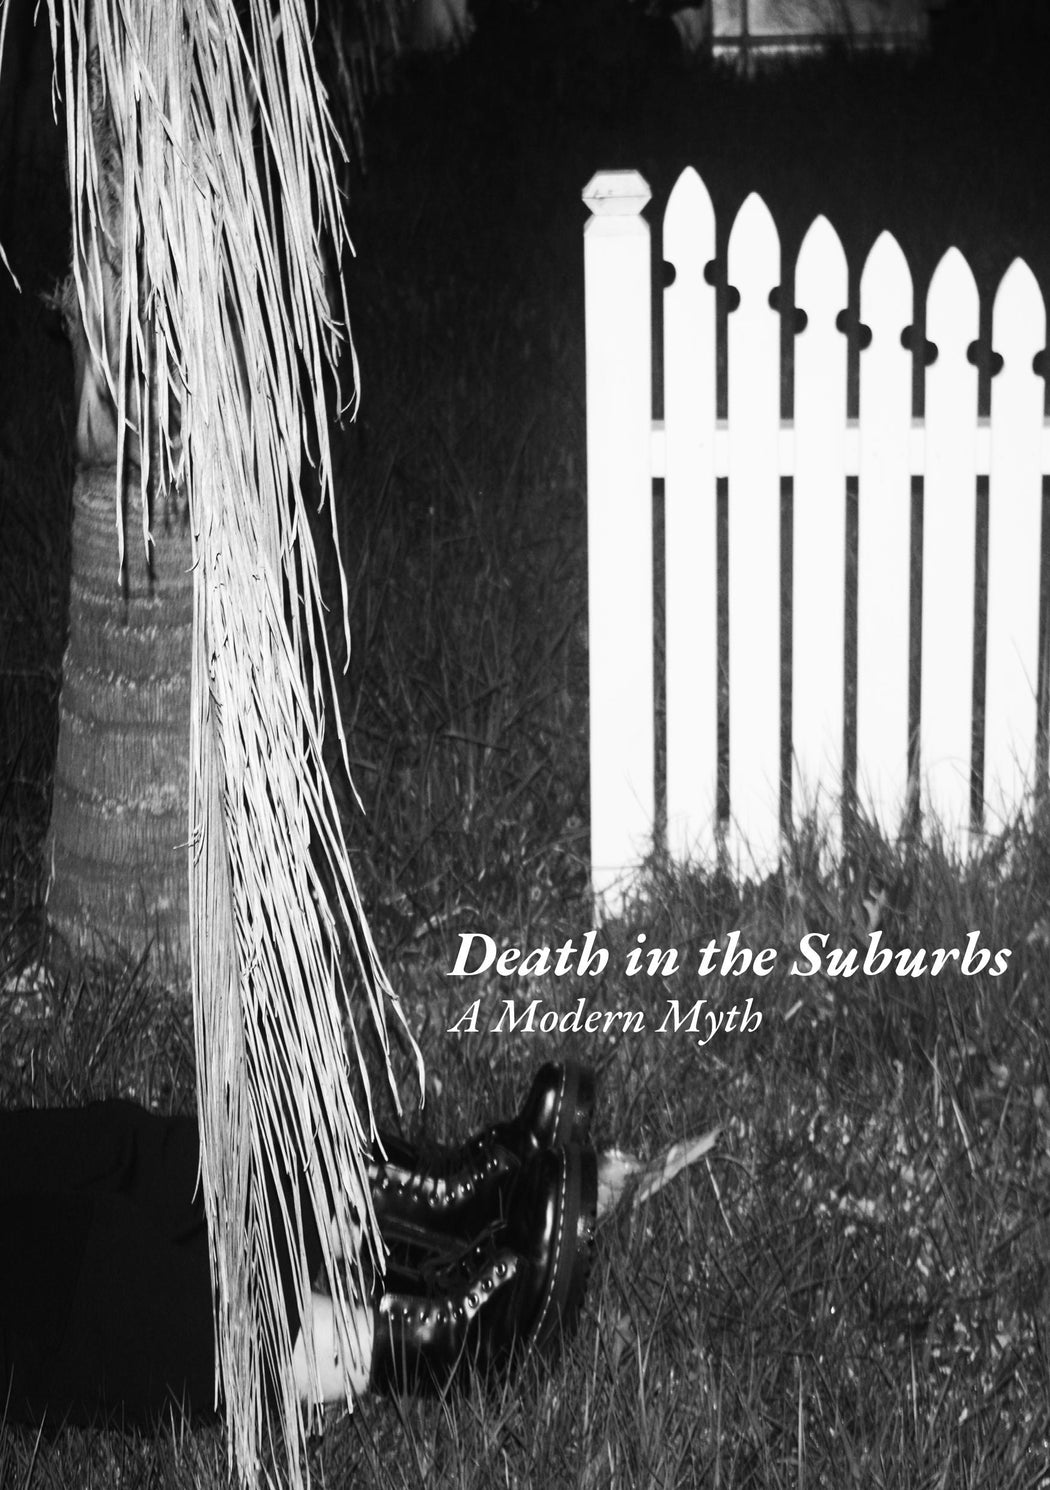 Death in the Suburbs